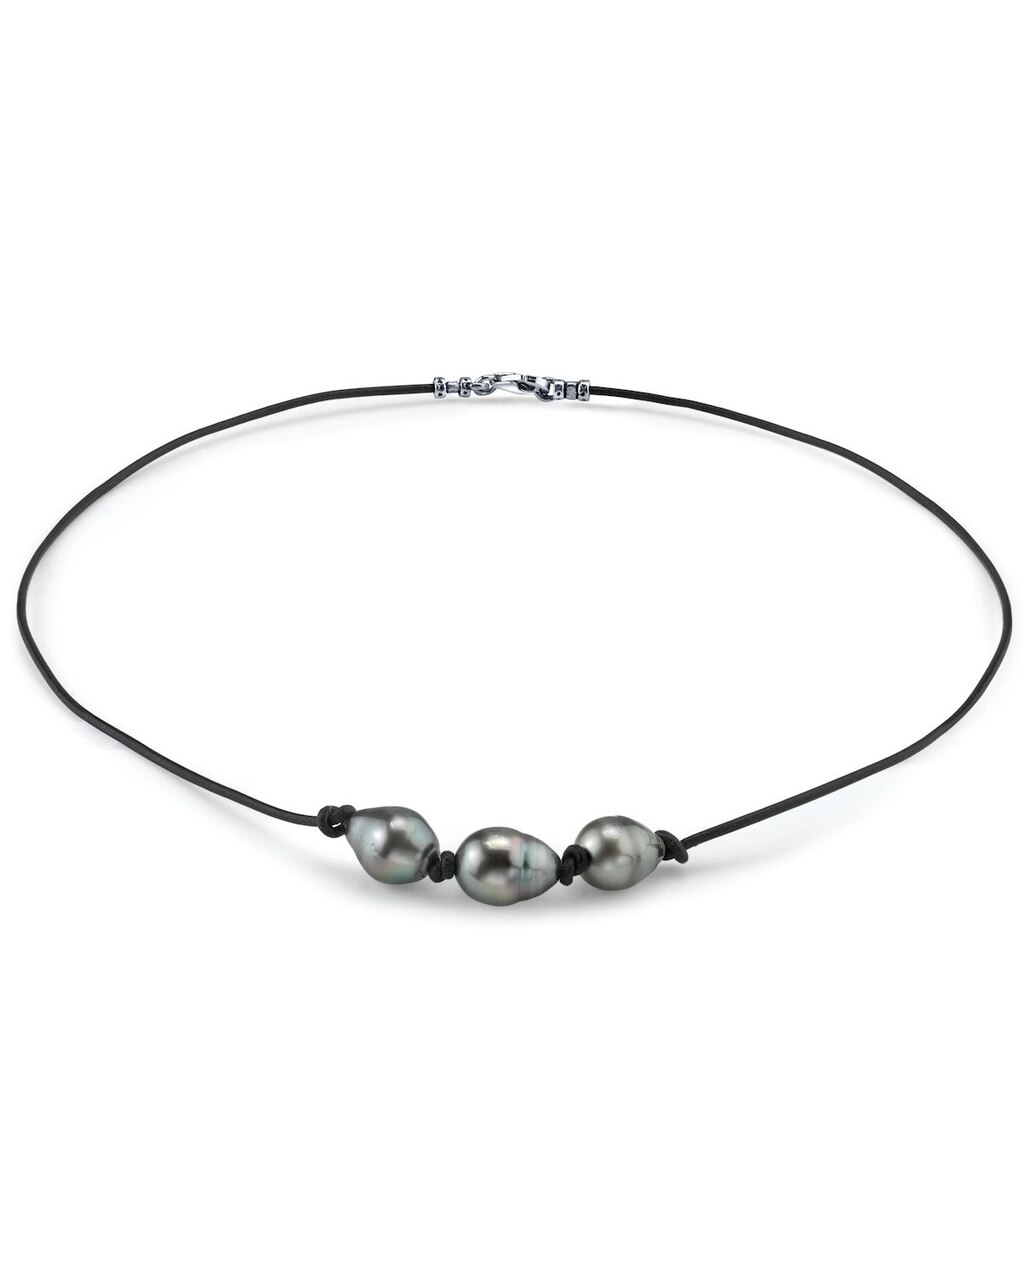 This beautiful necklace features three baroque shaped Tahitian South Sea pearls